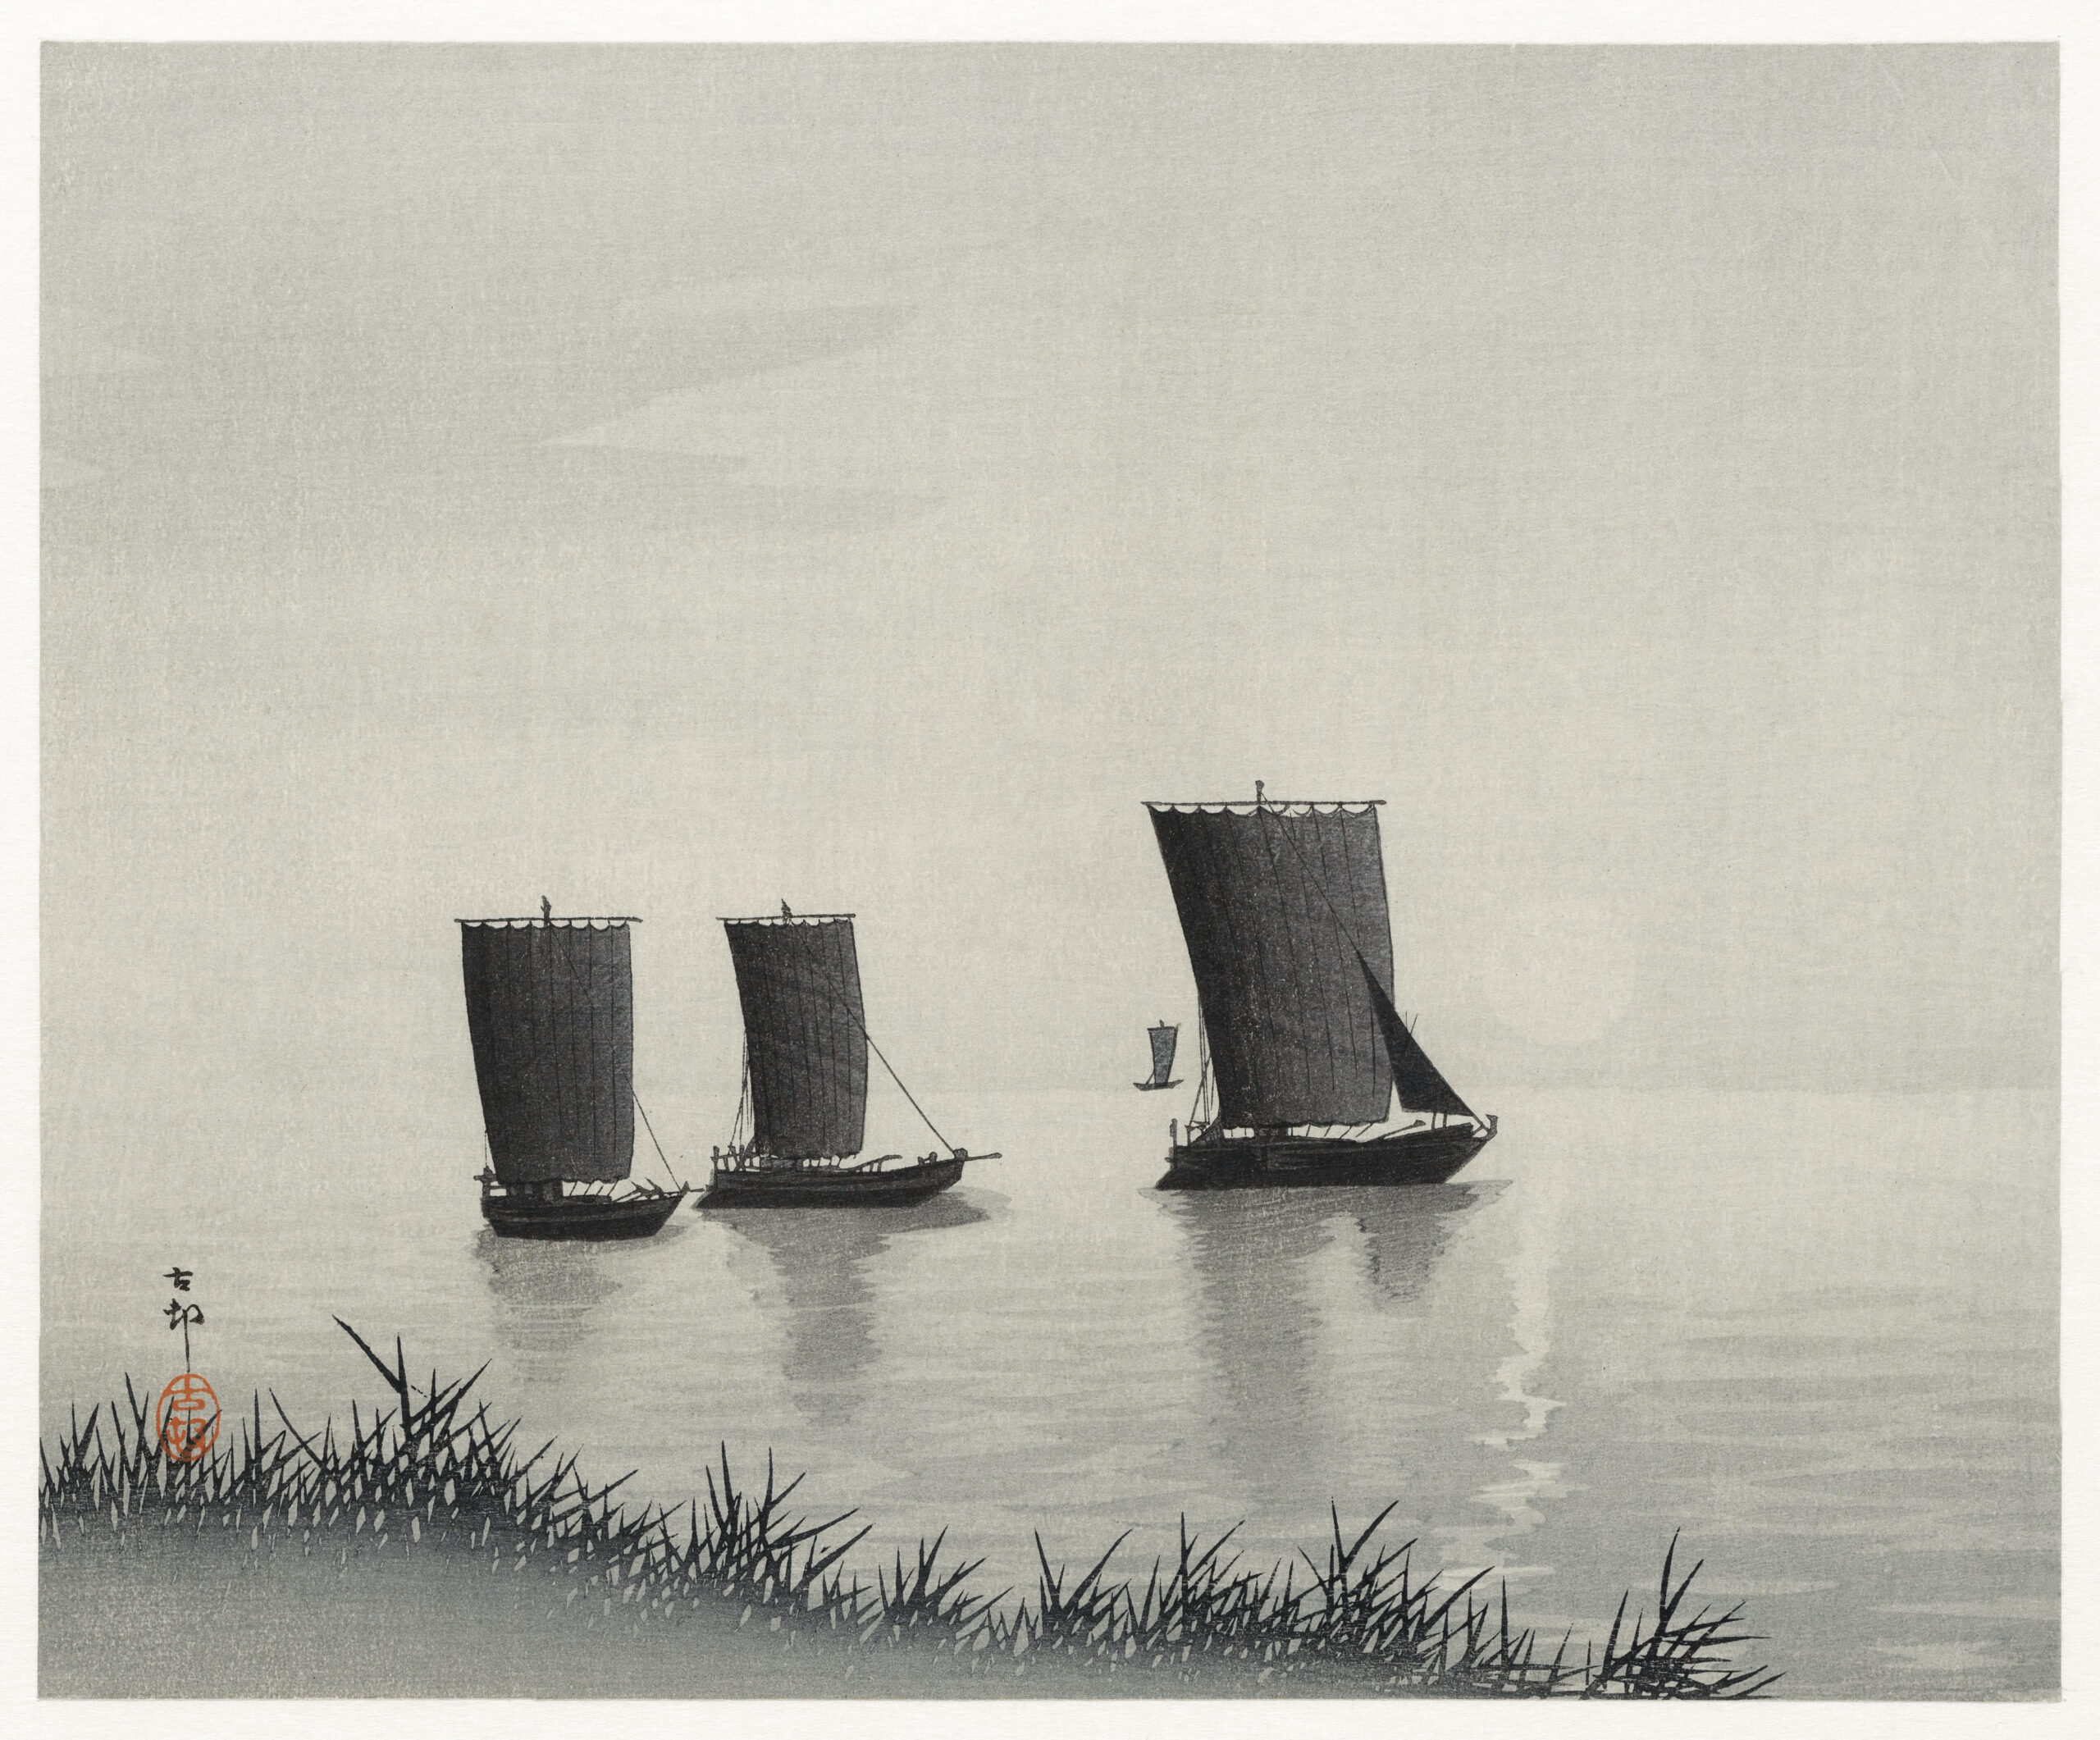 Fishing boats (1900 - 1936) by Ohara Koson (1877-1945). Original from The Rijksmuseum. Digitally enhanced by rawpixel.